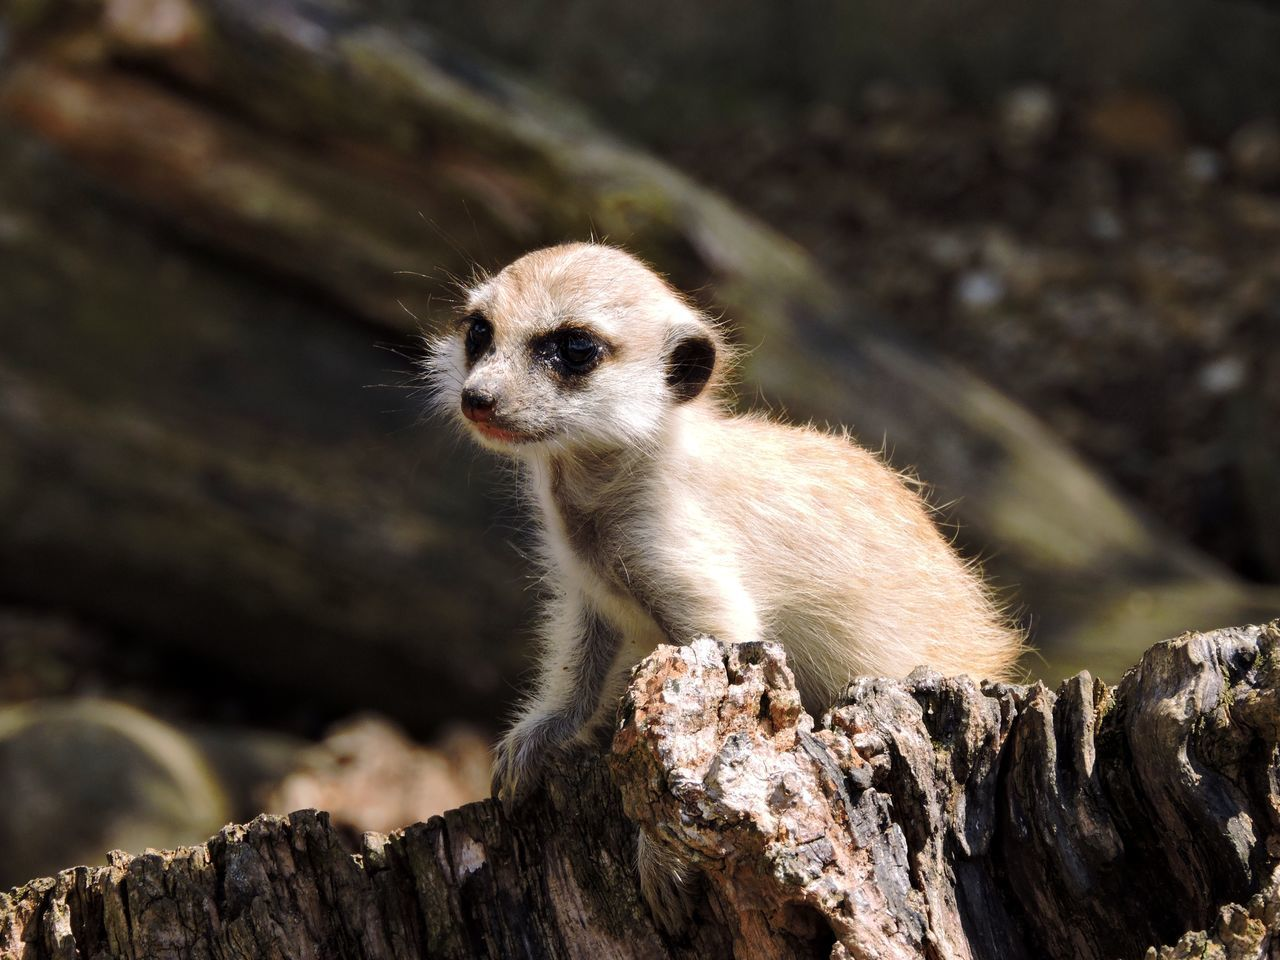 Baby Close-up Cute Day Depth Of Field England Focus Meerkat Nature Northamptonshire Outdoors Uk United Kingdom View Wood